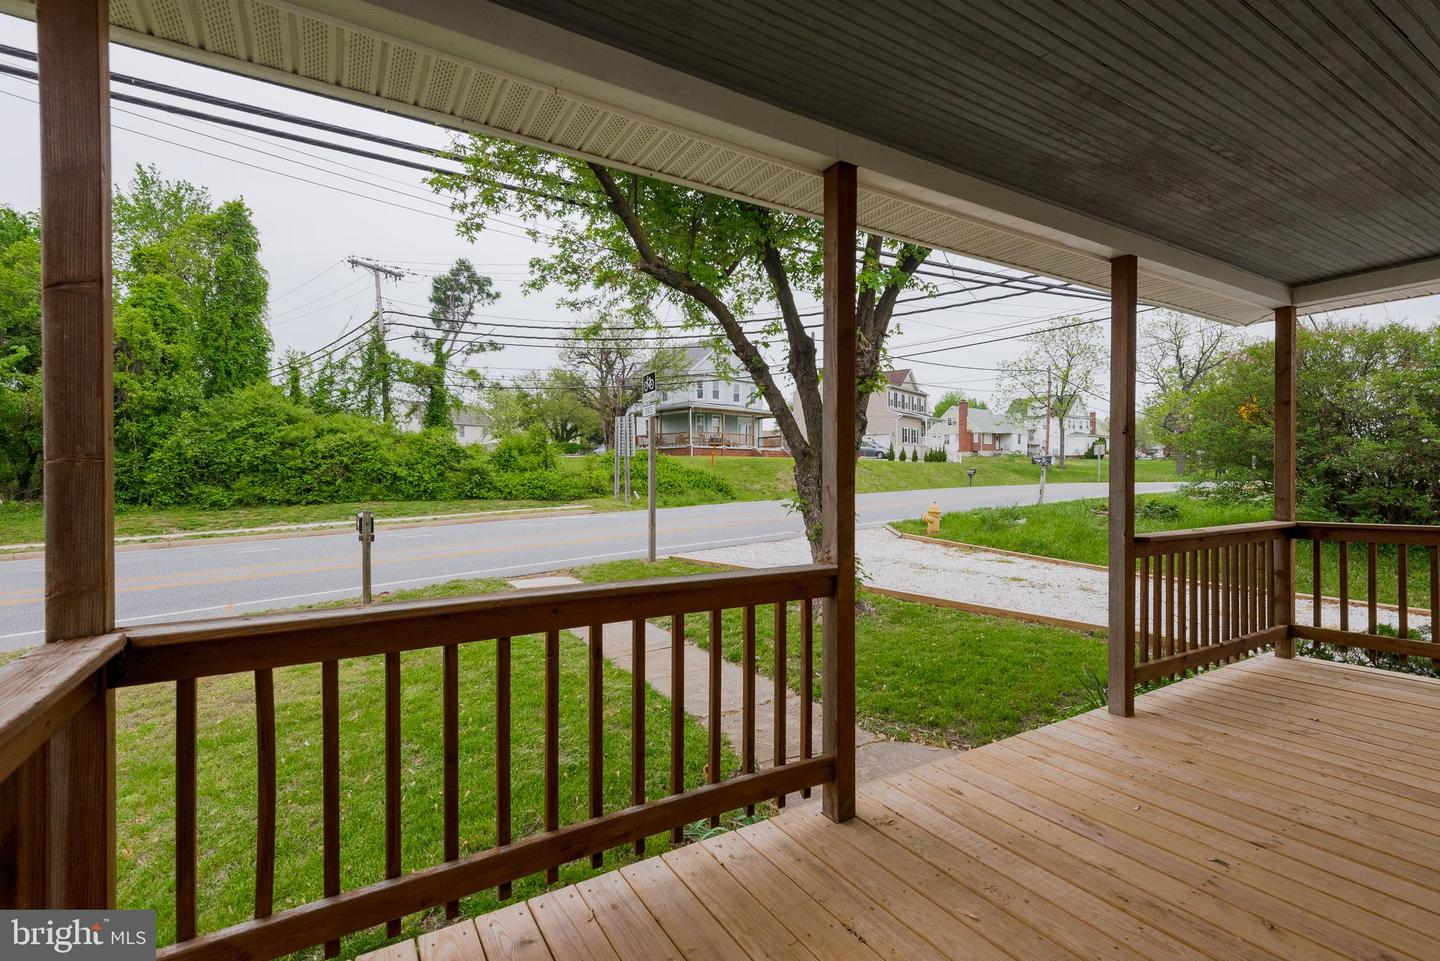 Additional photo for property listing at 803 S Camp Meade Rd Linthicum, Maryland 21090 United States